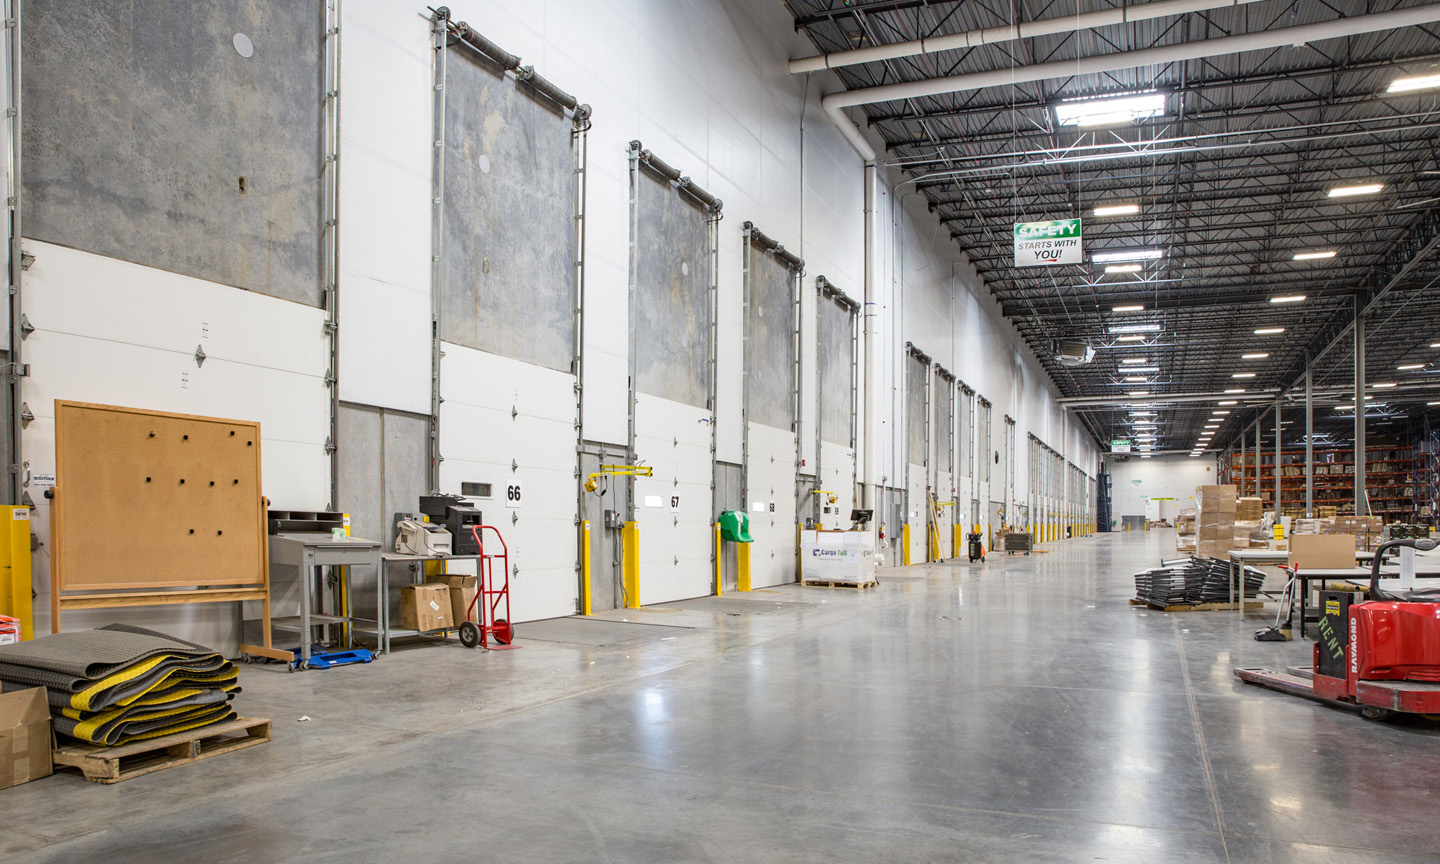 BDO 961 Amer Sports industrial property manager